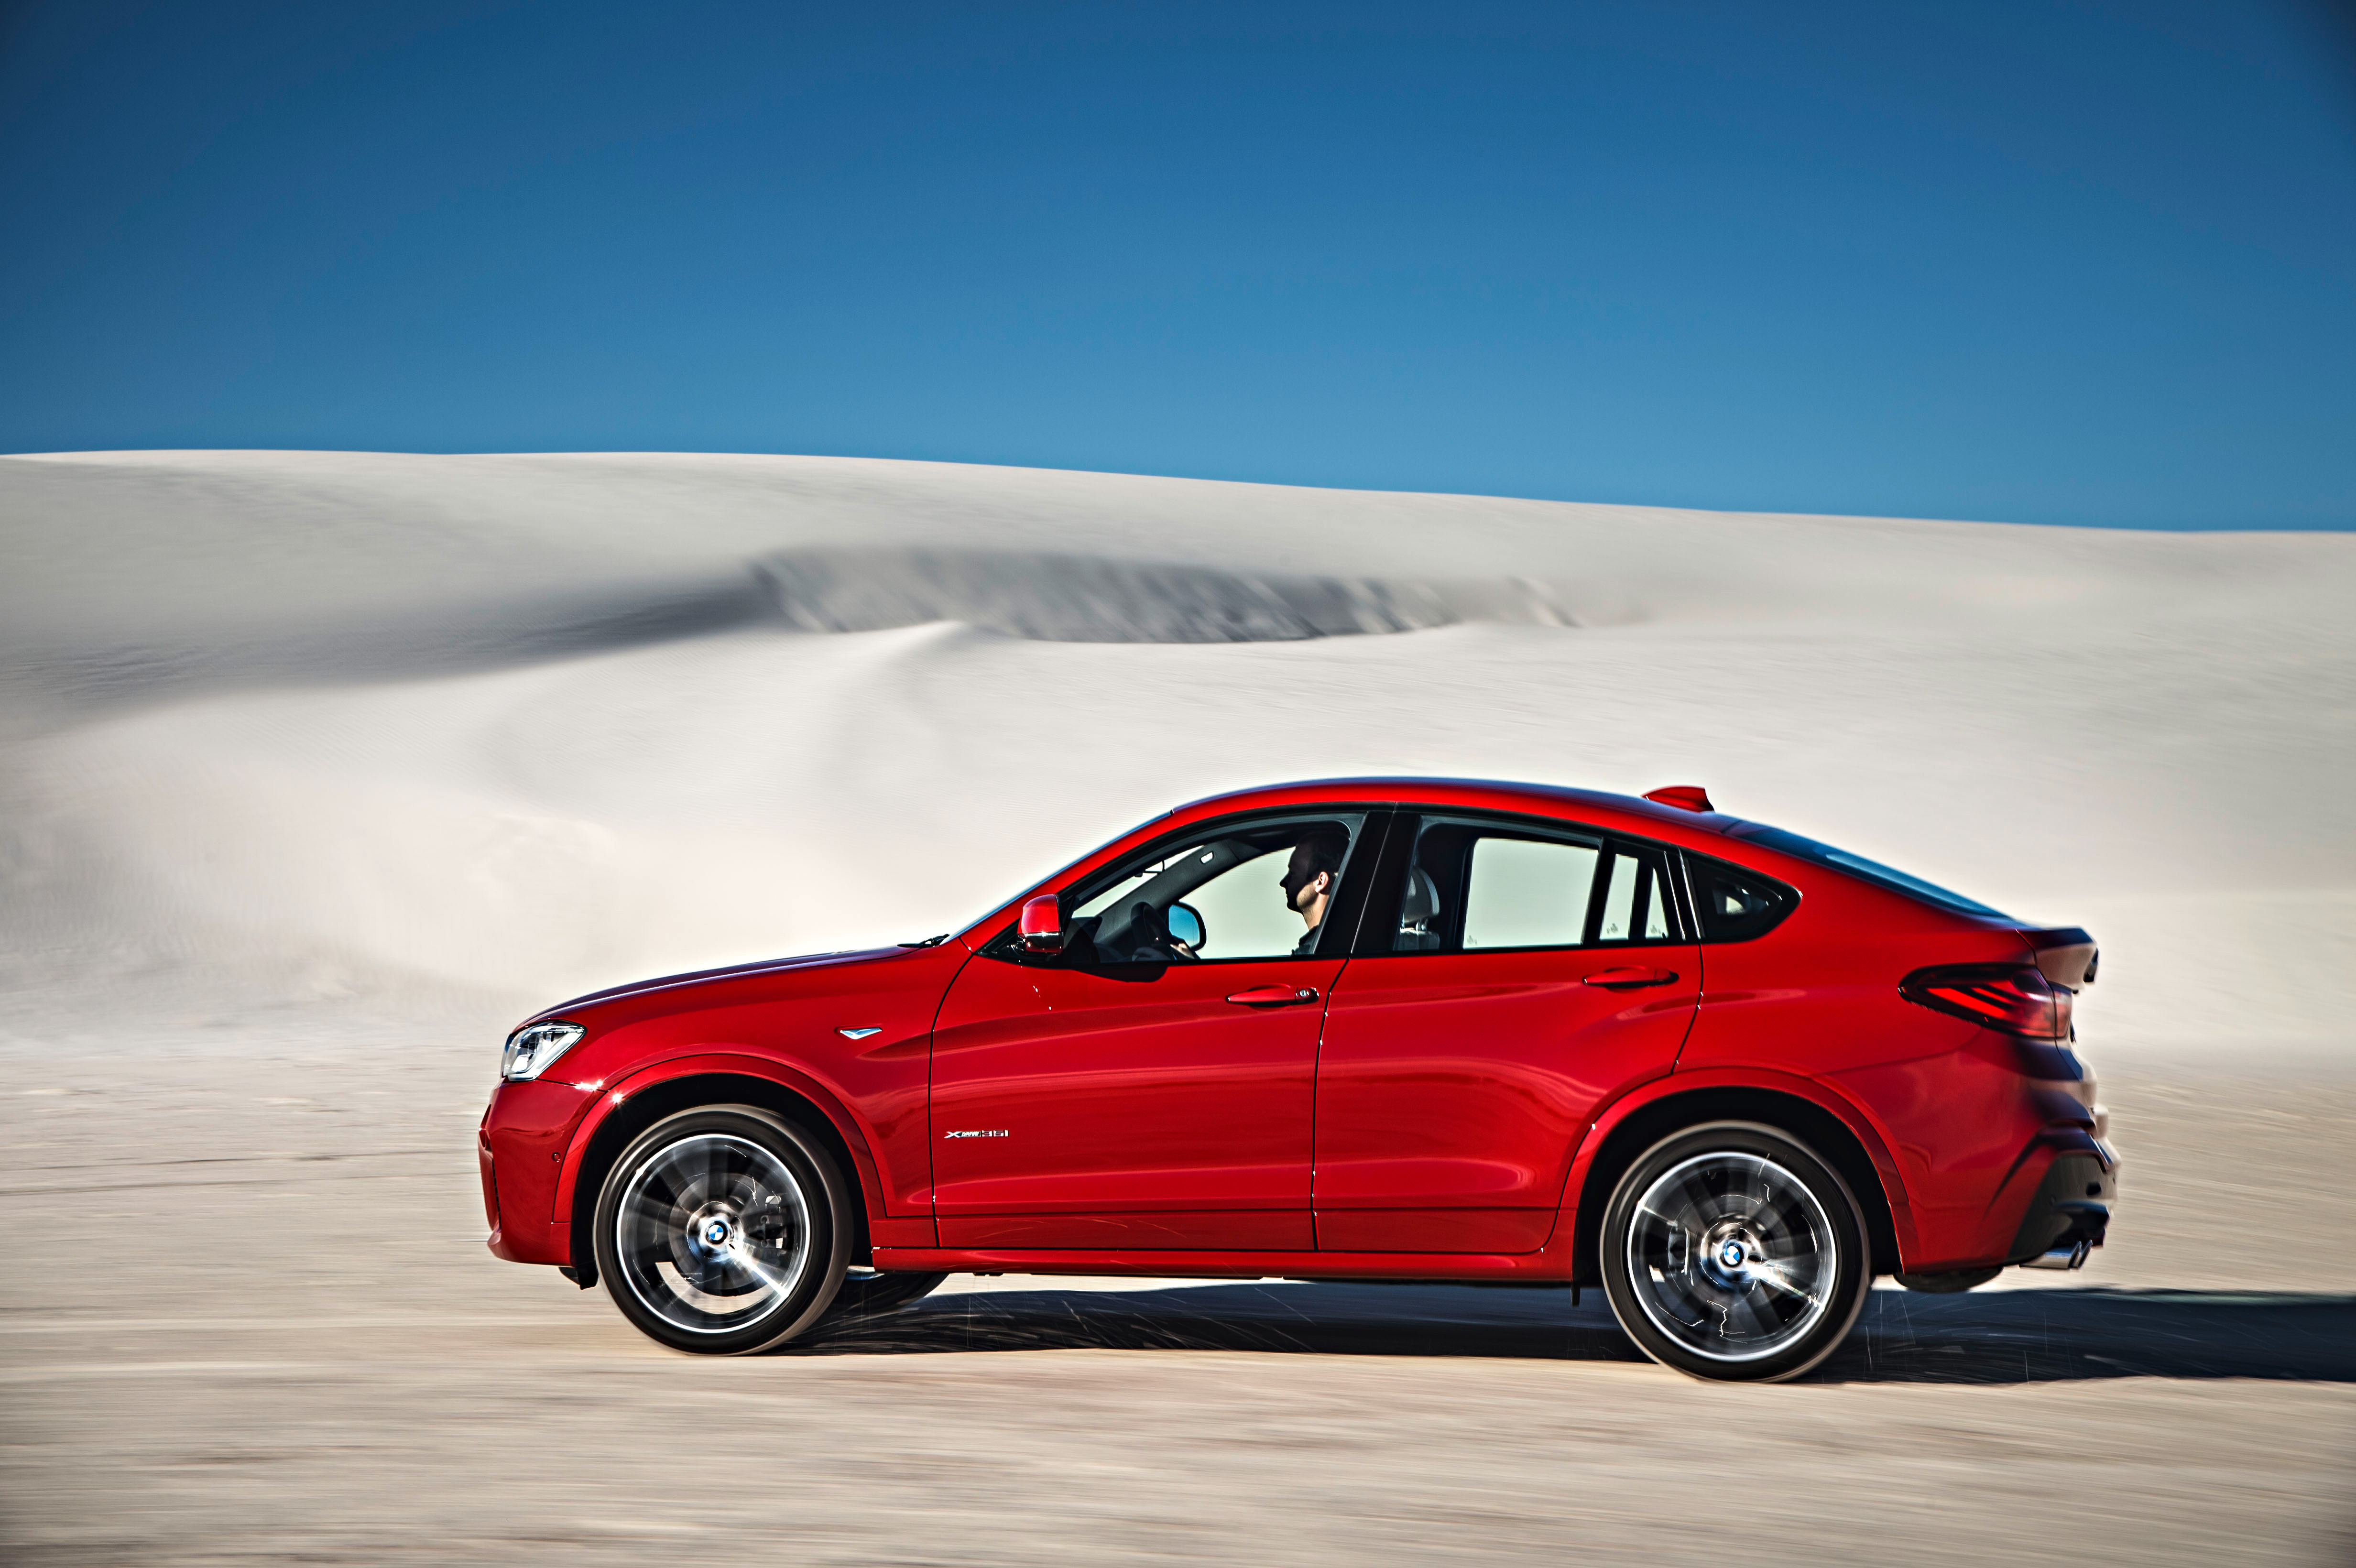 F26 Bmw X4 Unveiled X3 Gets The Coupe Treatment Image